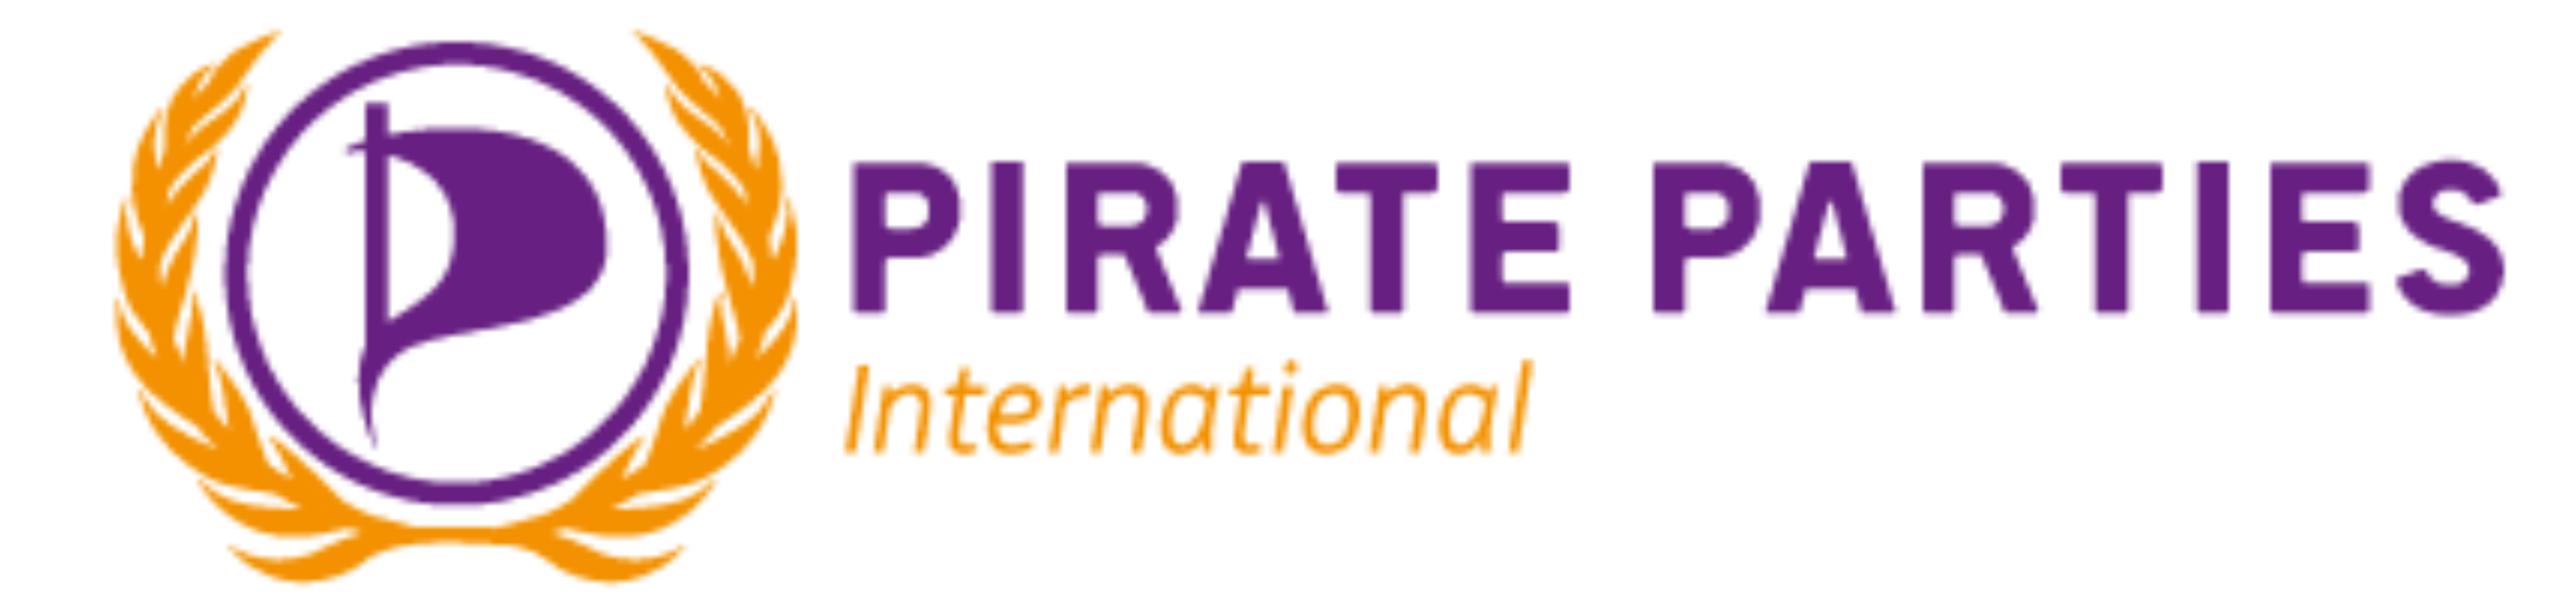 2016 | Pirate Parties International